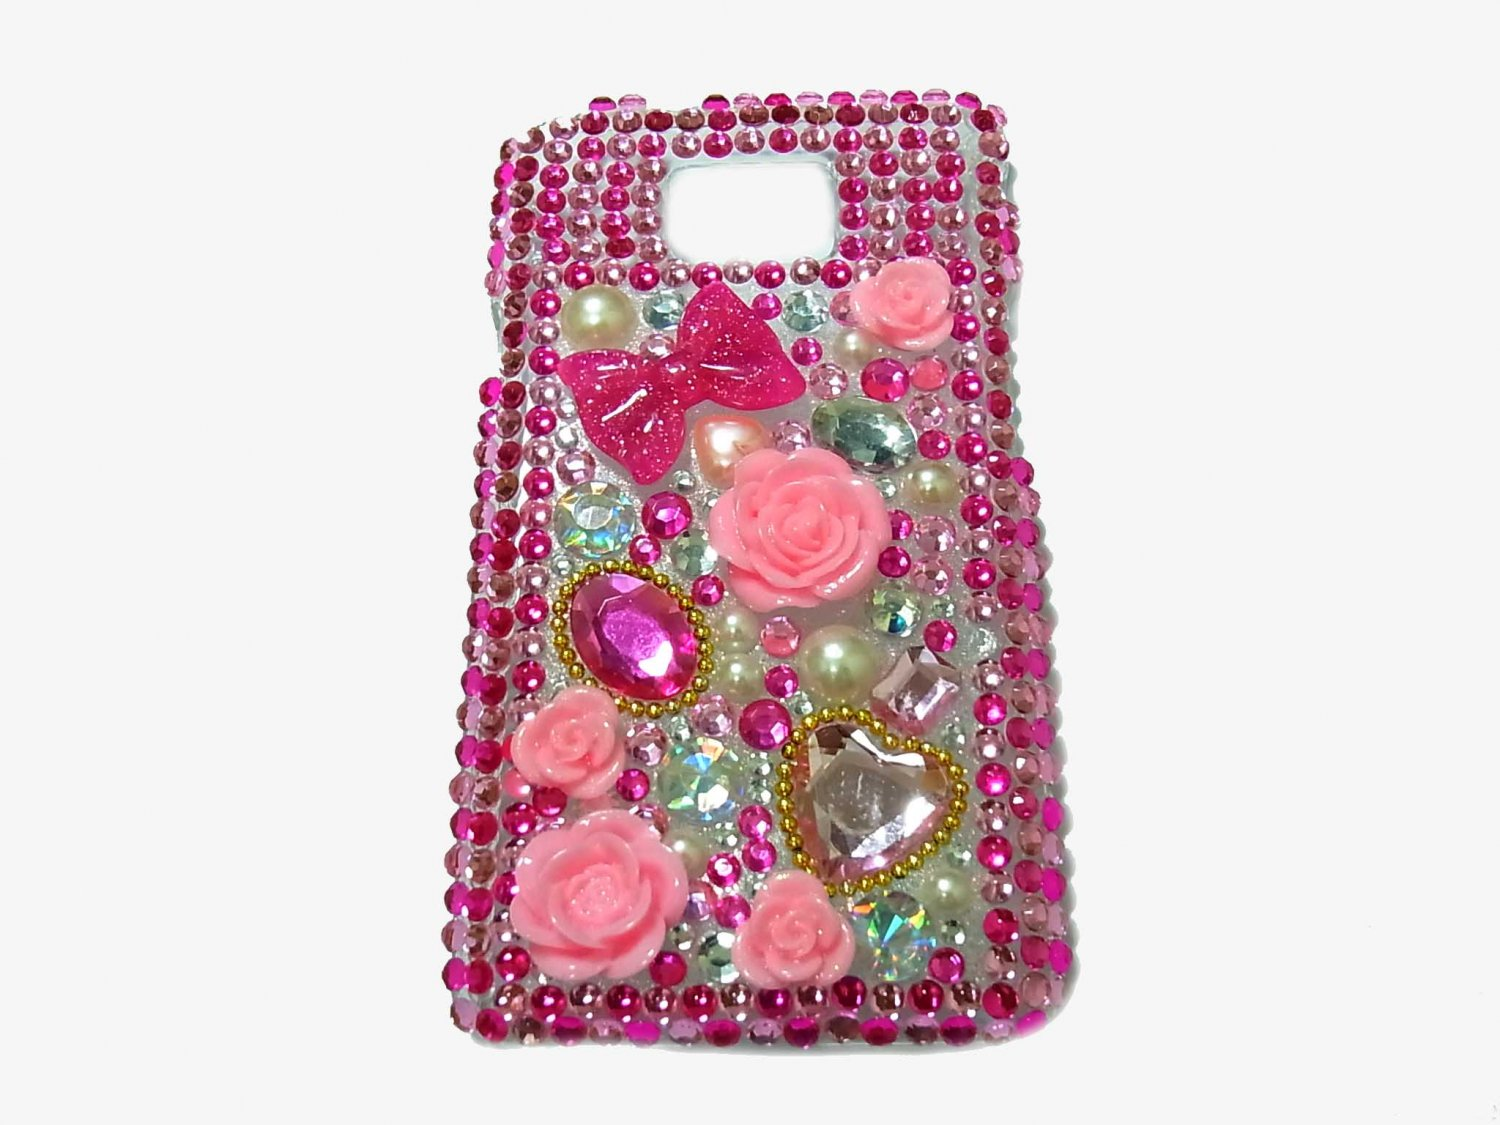 Bling Rhinestone Crystal Dark Pink Flower Case Cover for Samsung i9100 Galaxy S 2 II